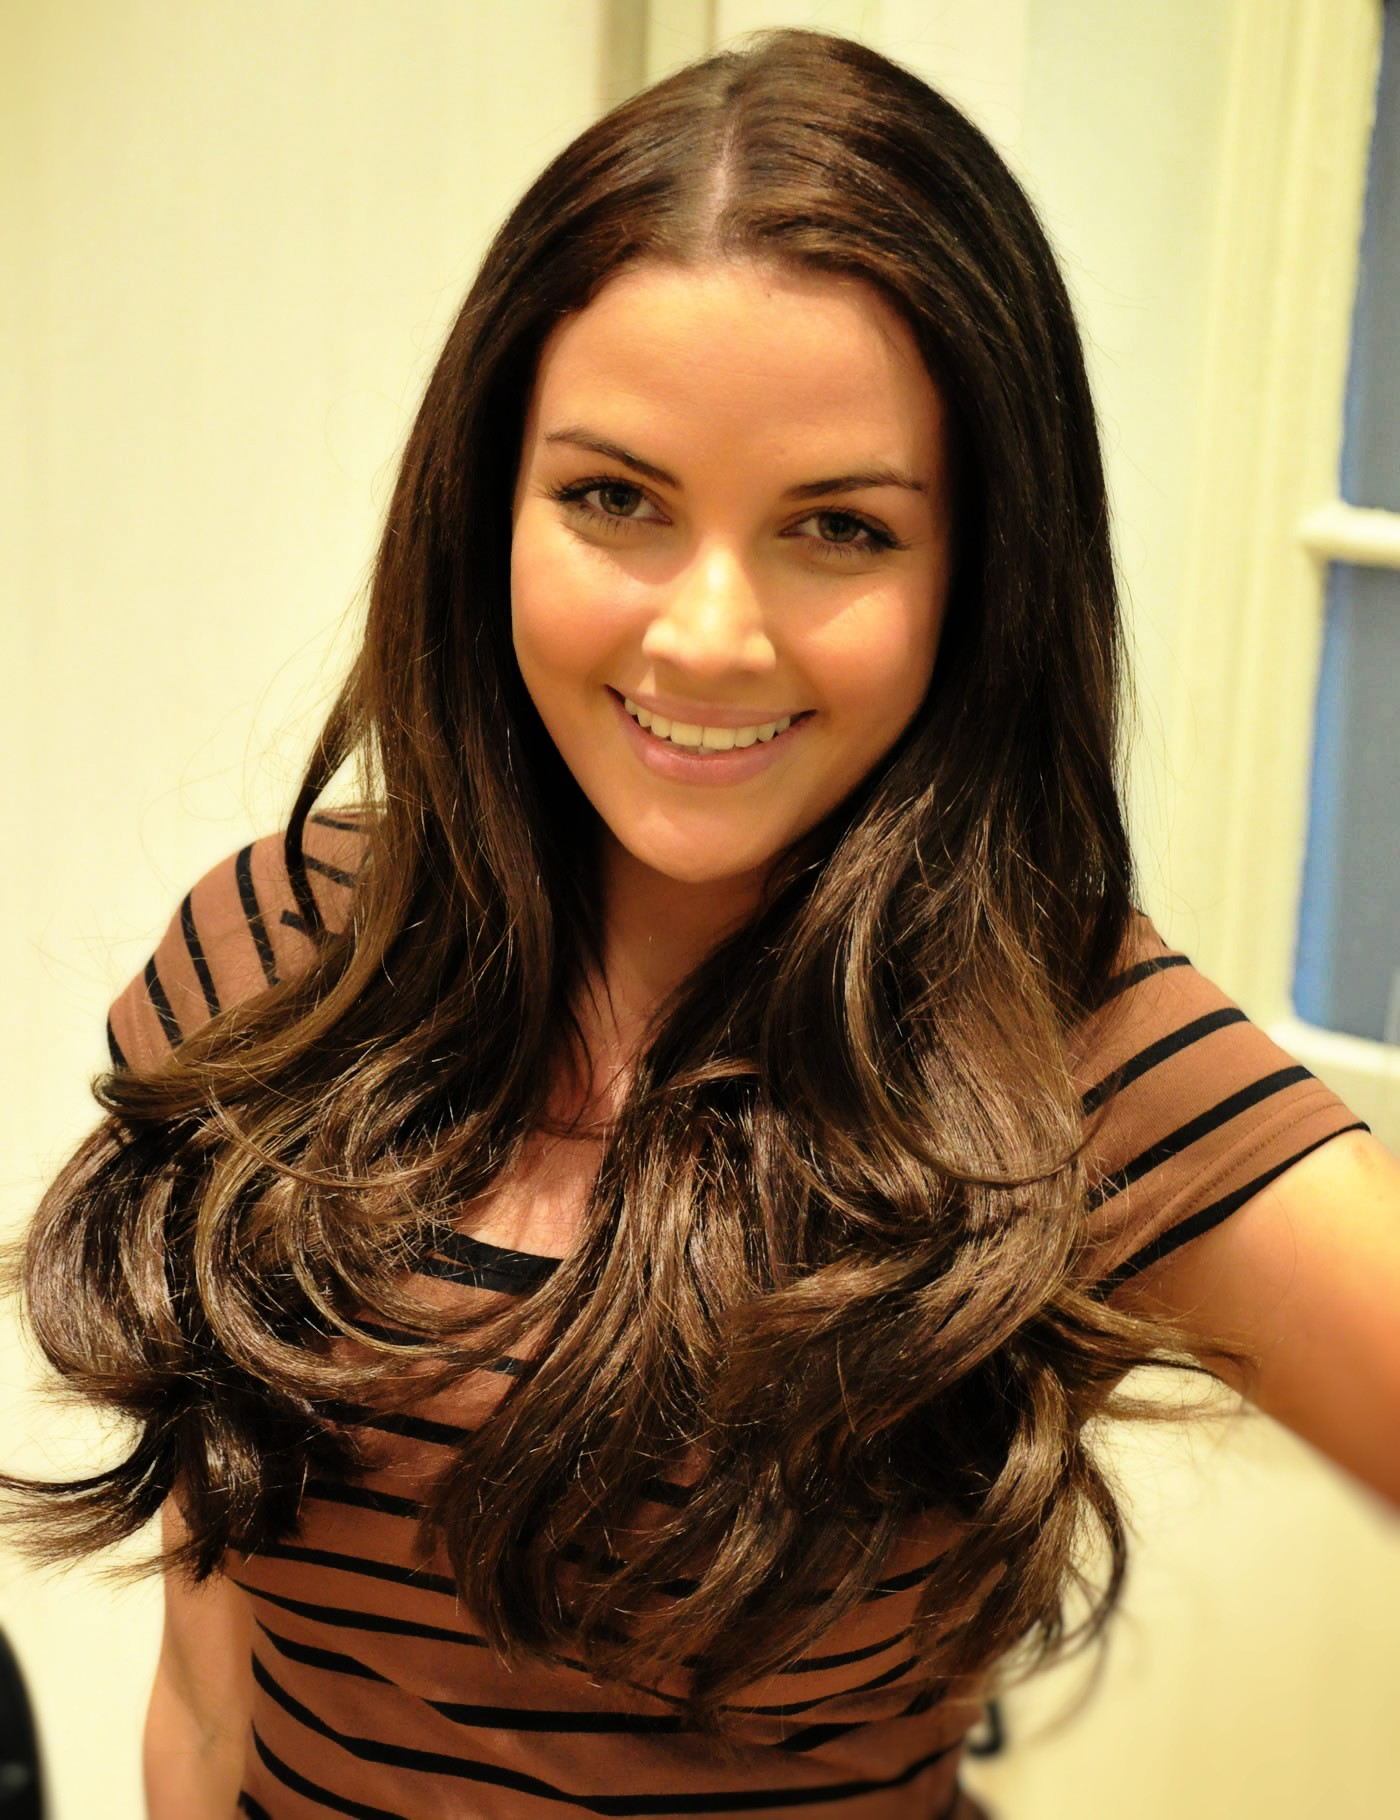 'Glee' Tour cast get hair extensions at Mark Glenn, London - Stacey after